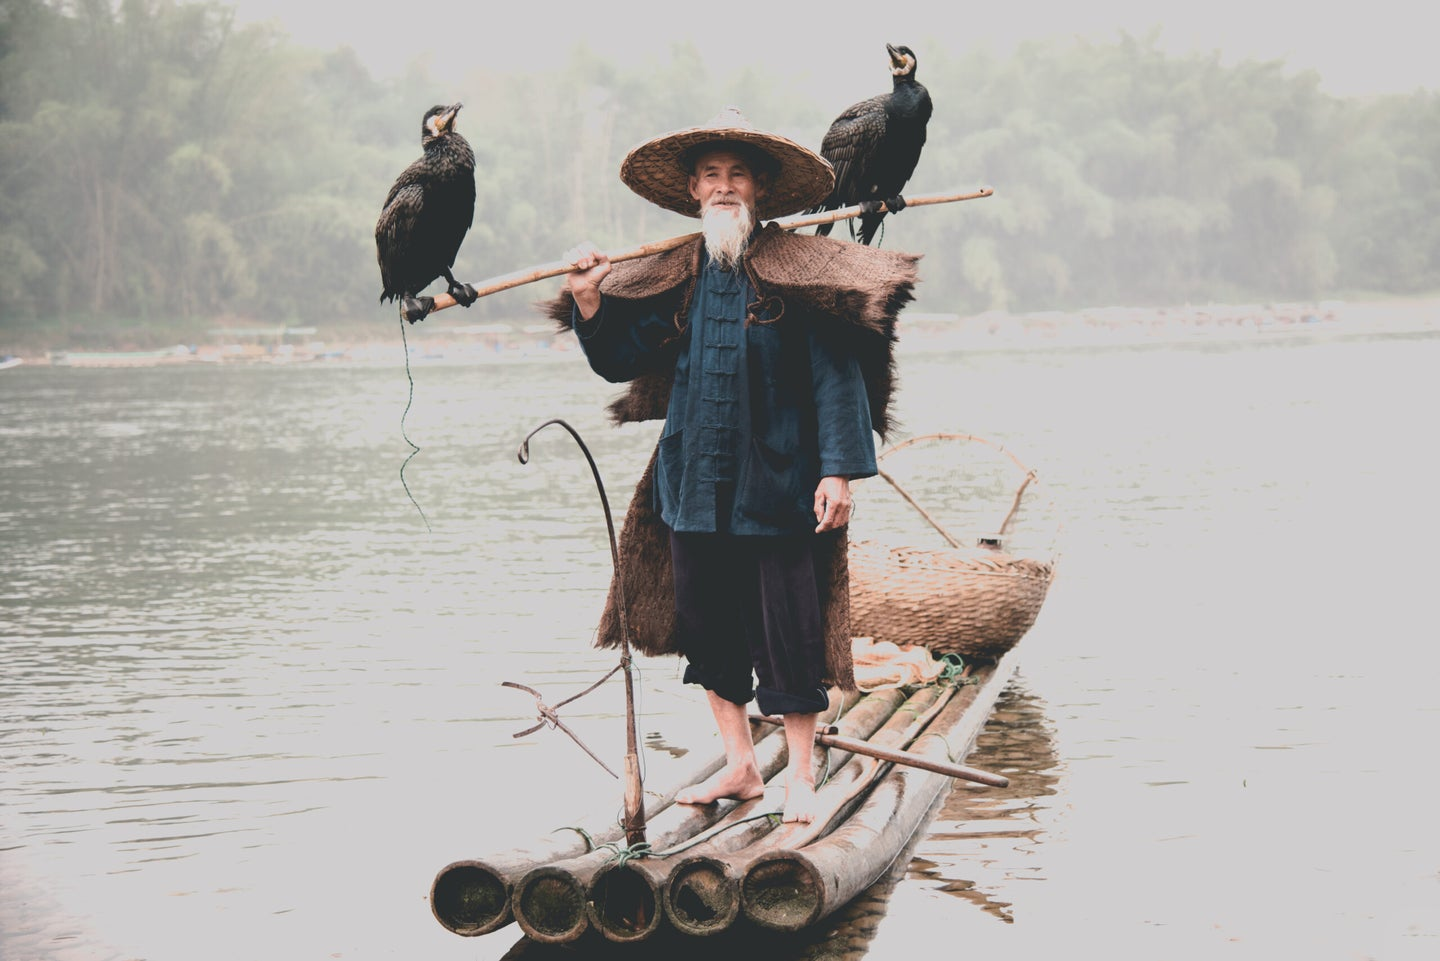 Traditional Chinese cormorant fisherman standing on a boat with two birds.